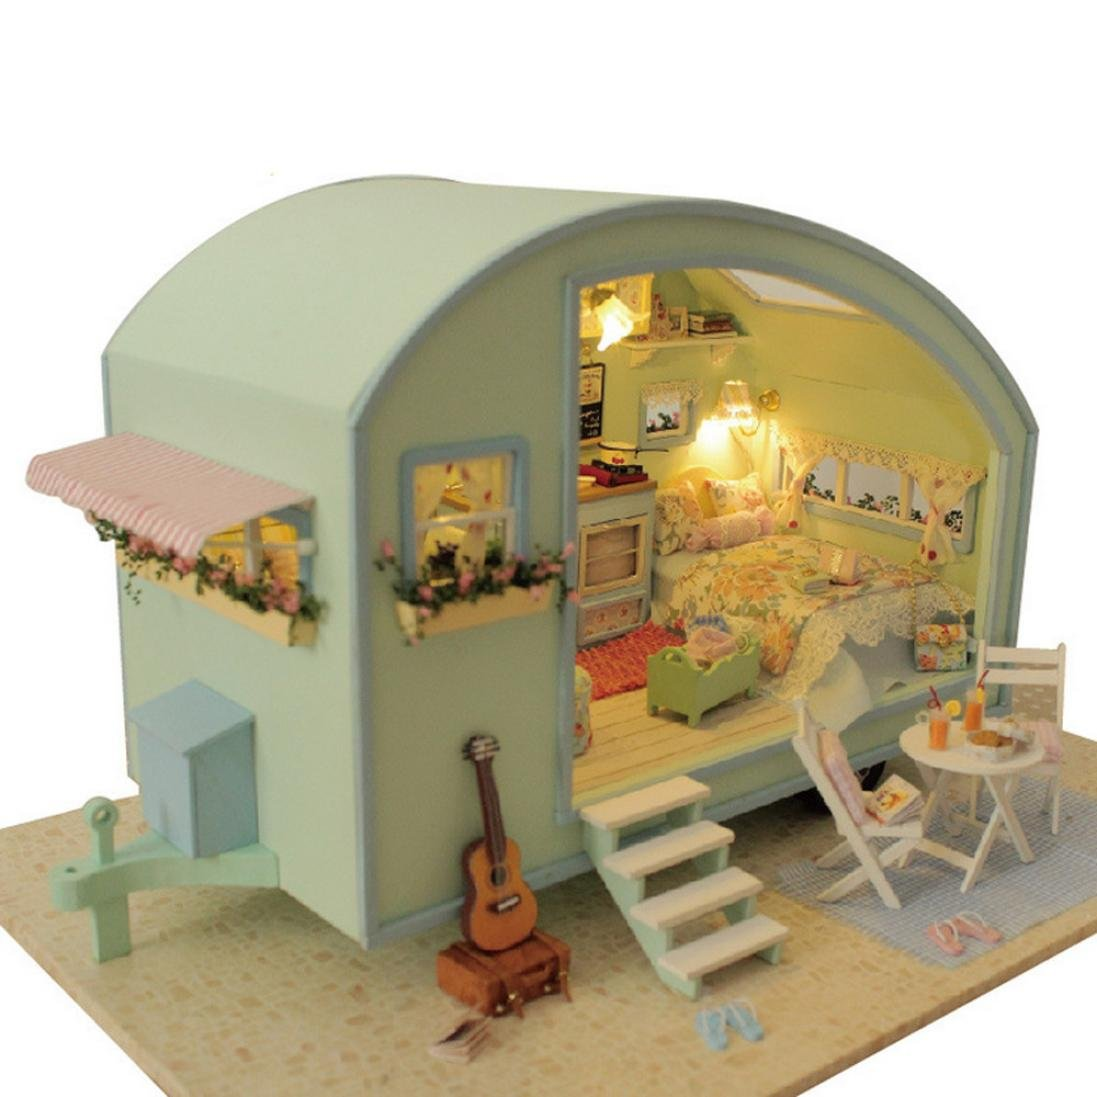 DIY 3D Wooden Dollhouse Miniature Furniture Kit Doll House Motor Home LED+Music--Time Traval, Festive Christmas Birthday Gift, Educational Toy Set